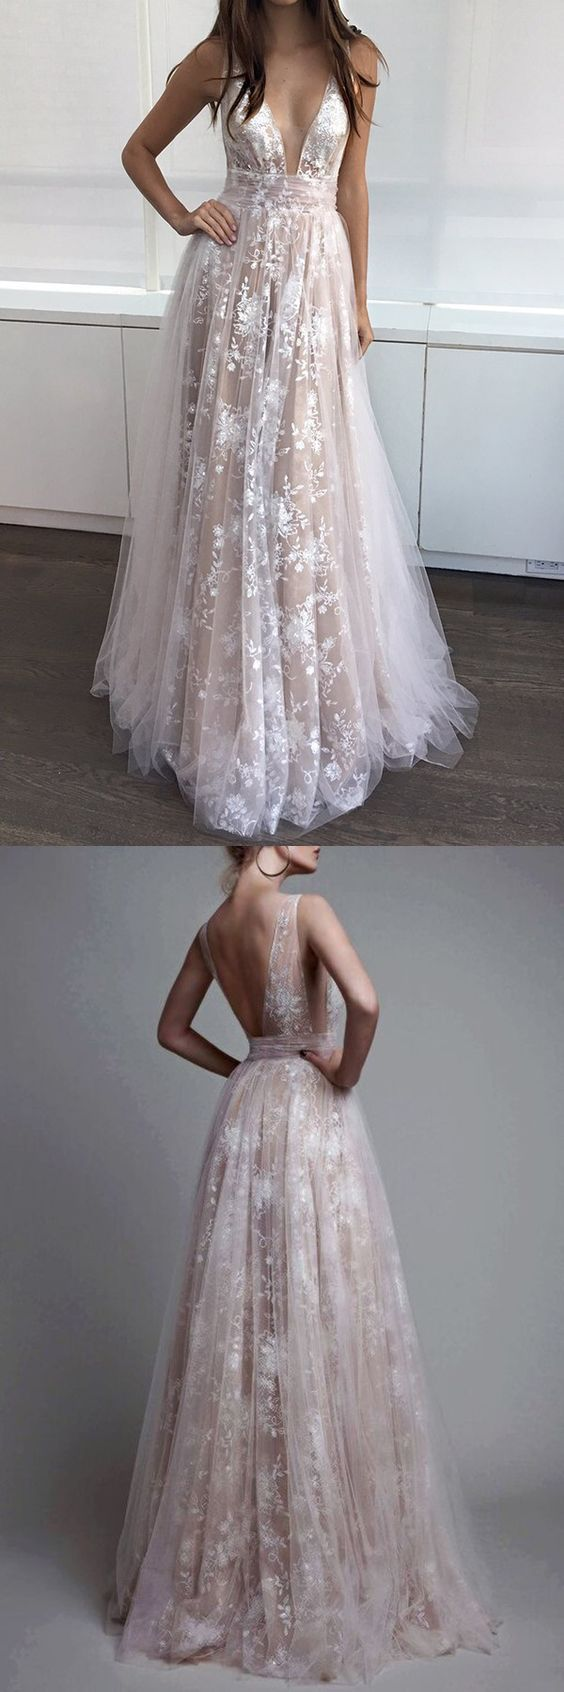 tulle and lace prom dresses, wedding party dresses, graduation party dresses,formal gowns